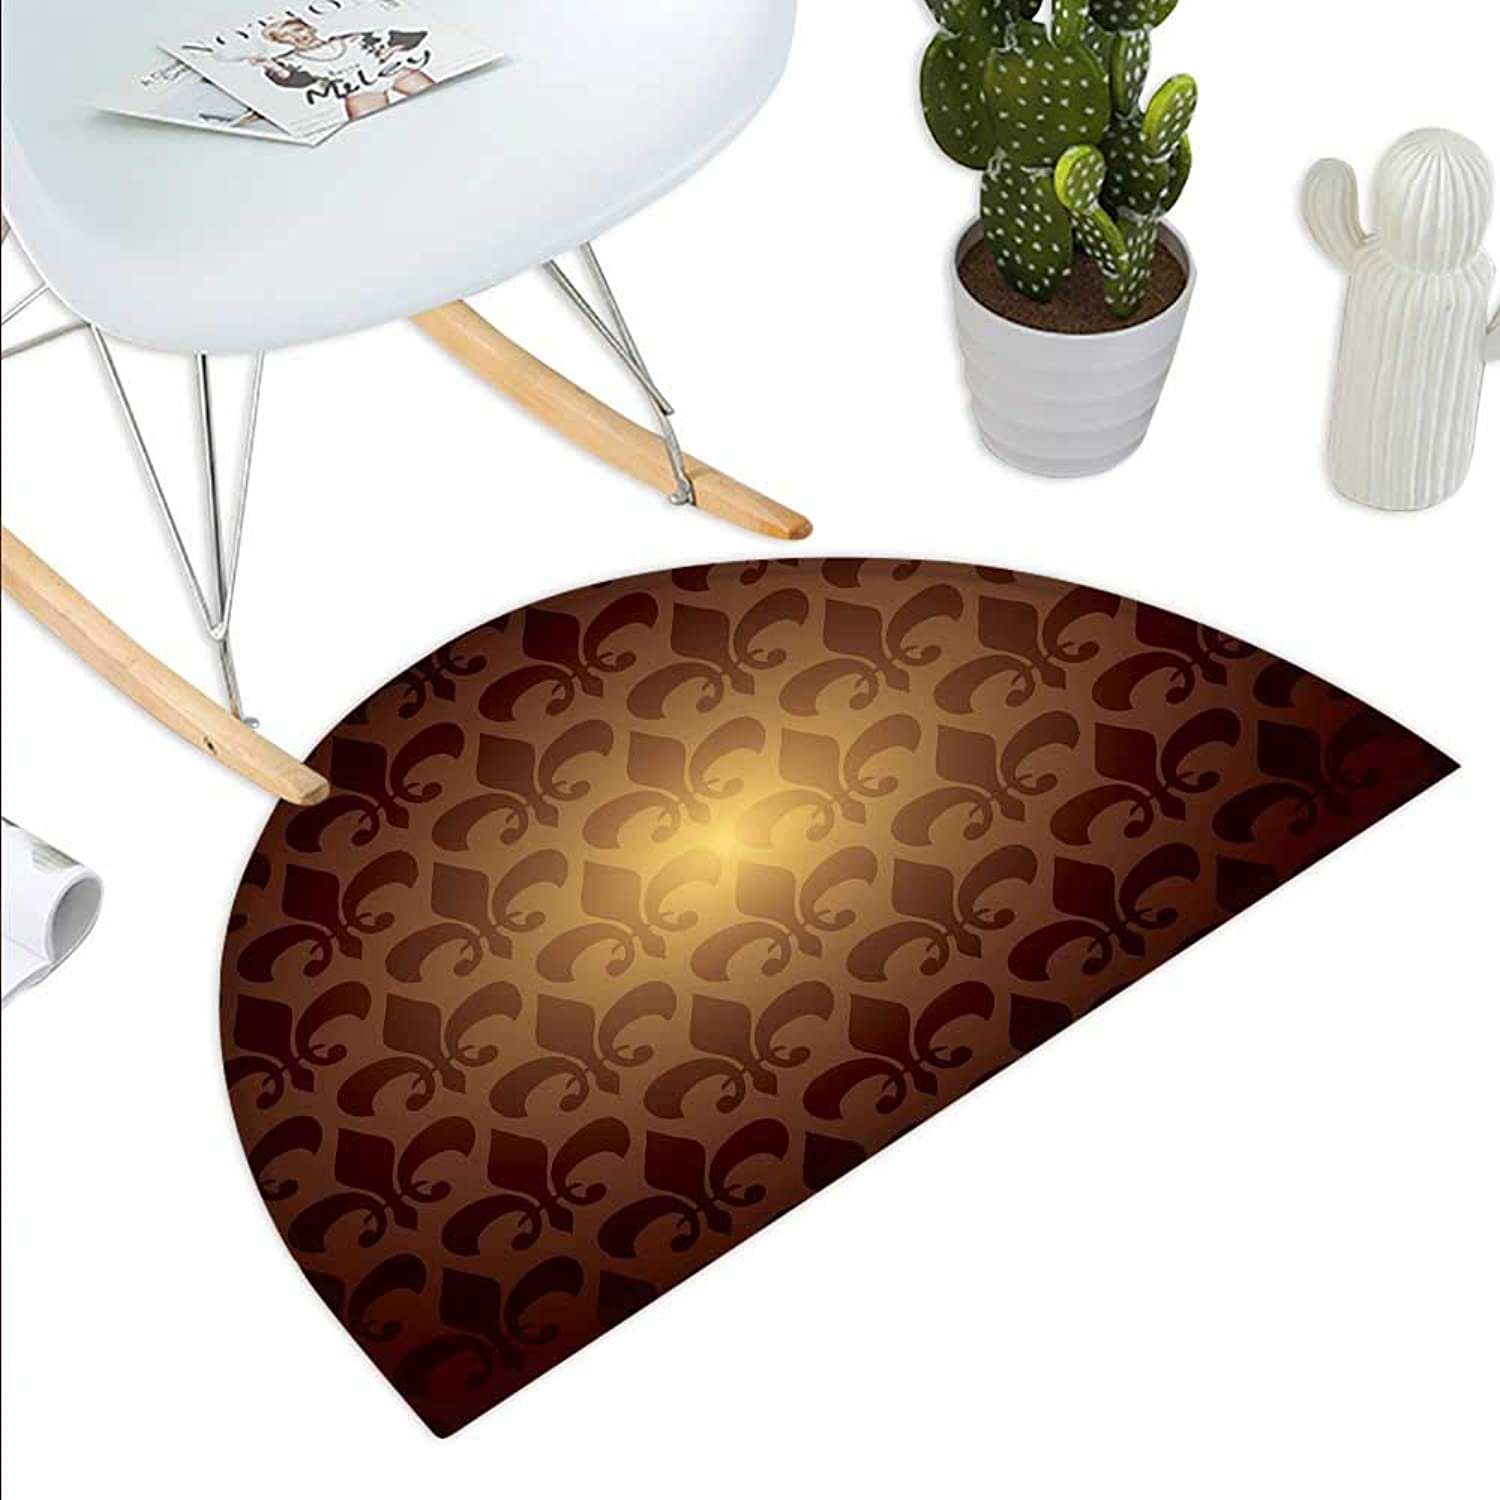 Fleur De Lis Semicircle Doormat Royal Lily Flower Inspired Floral Baroque Style Dark Pattern Modern Style Artwork Halfmoon doormats H 39.3  xD 59  Brown